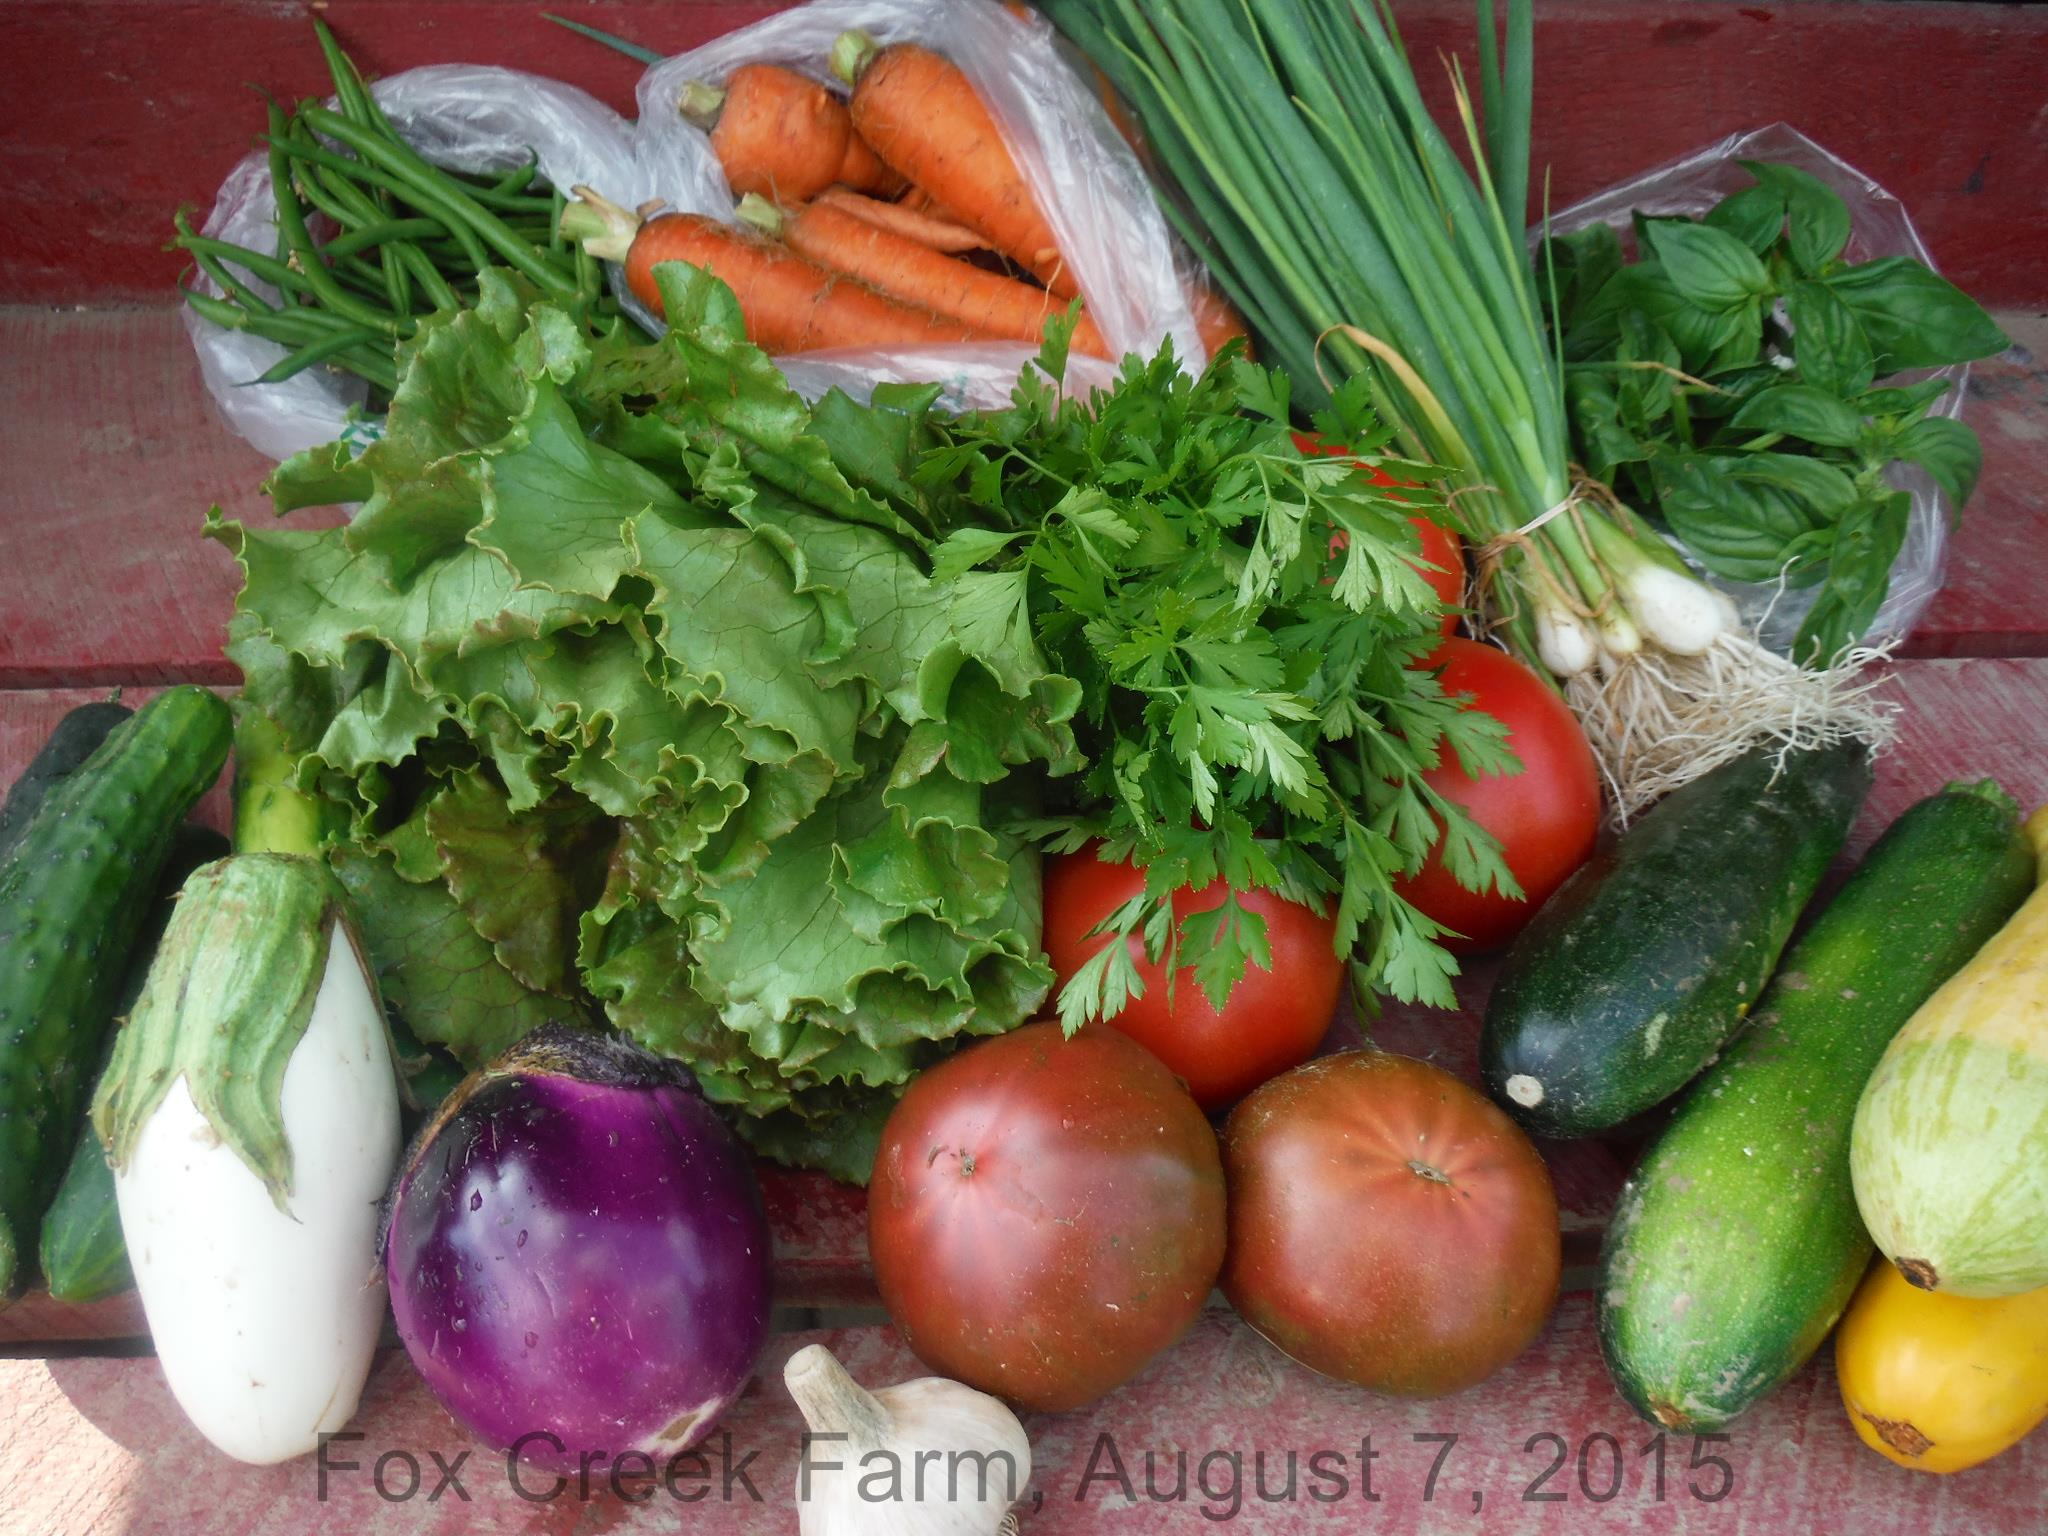 August produce from Fox Creek Farm